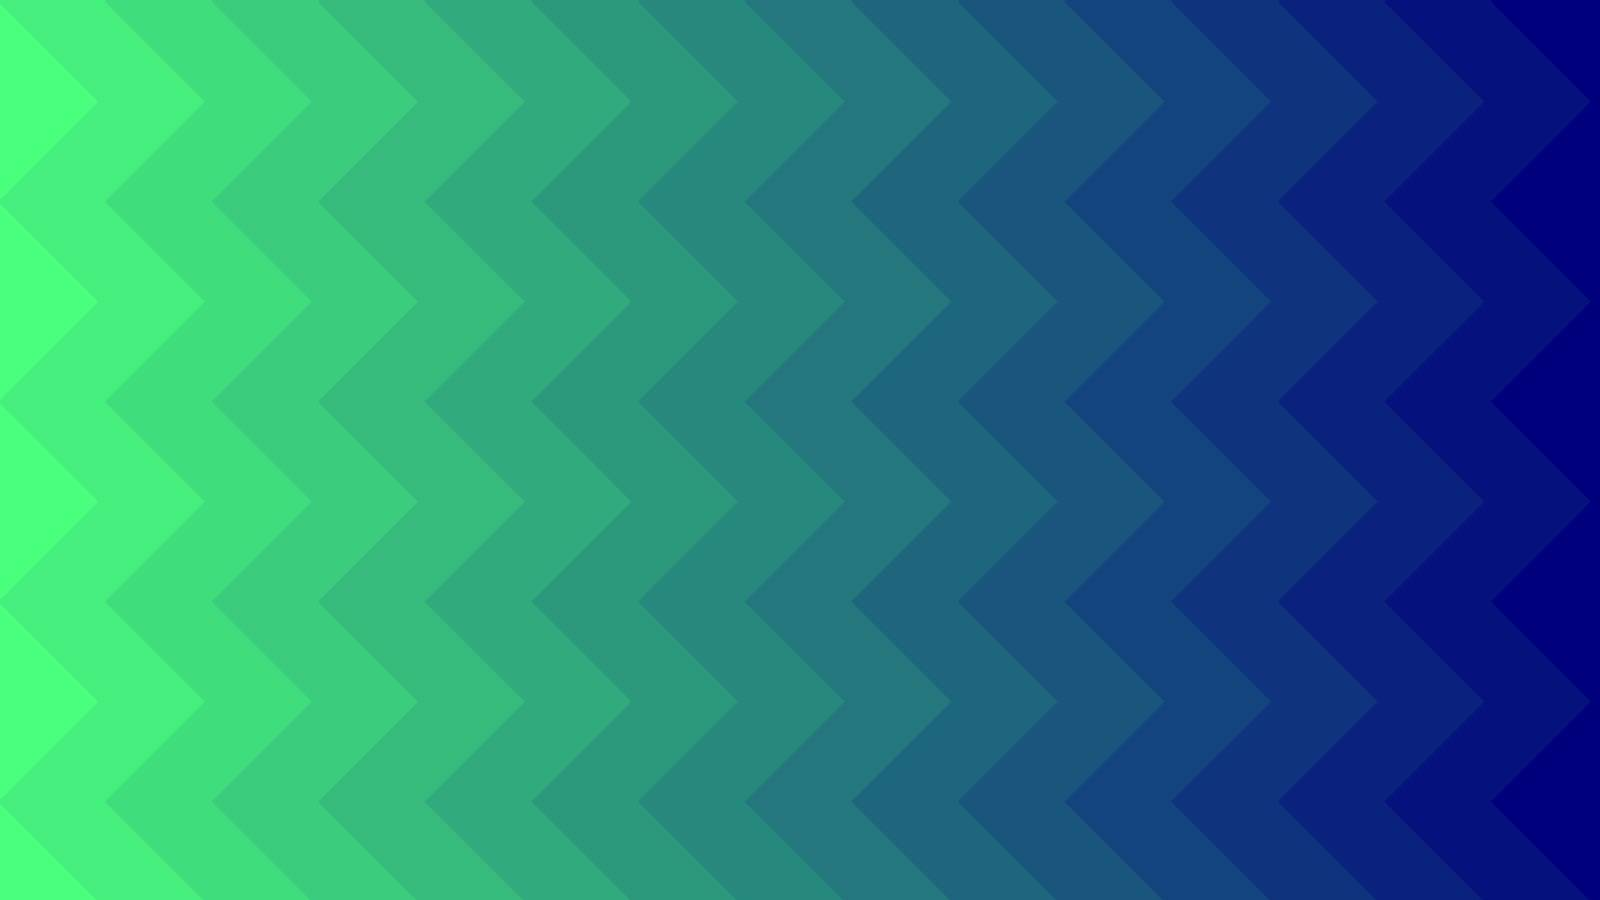 Green and Blue vector texture with zigzag. Modern abstract illustration for website, poster, banner ads.